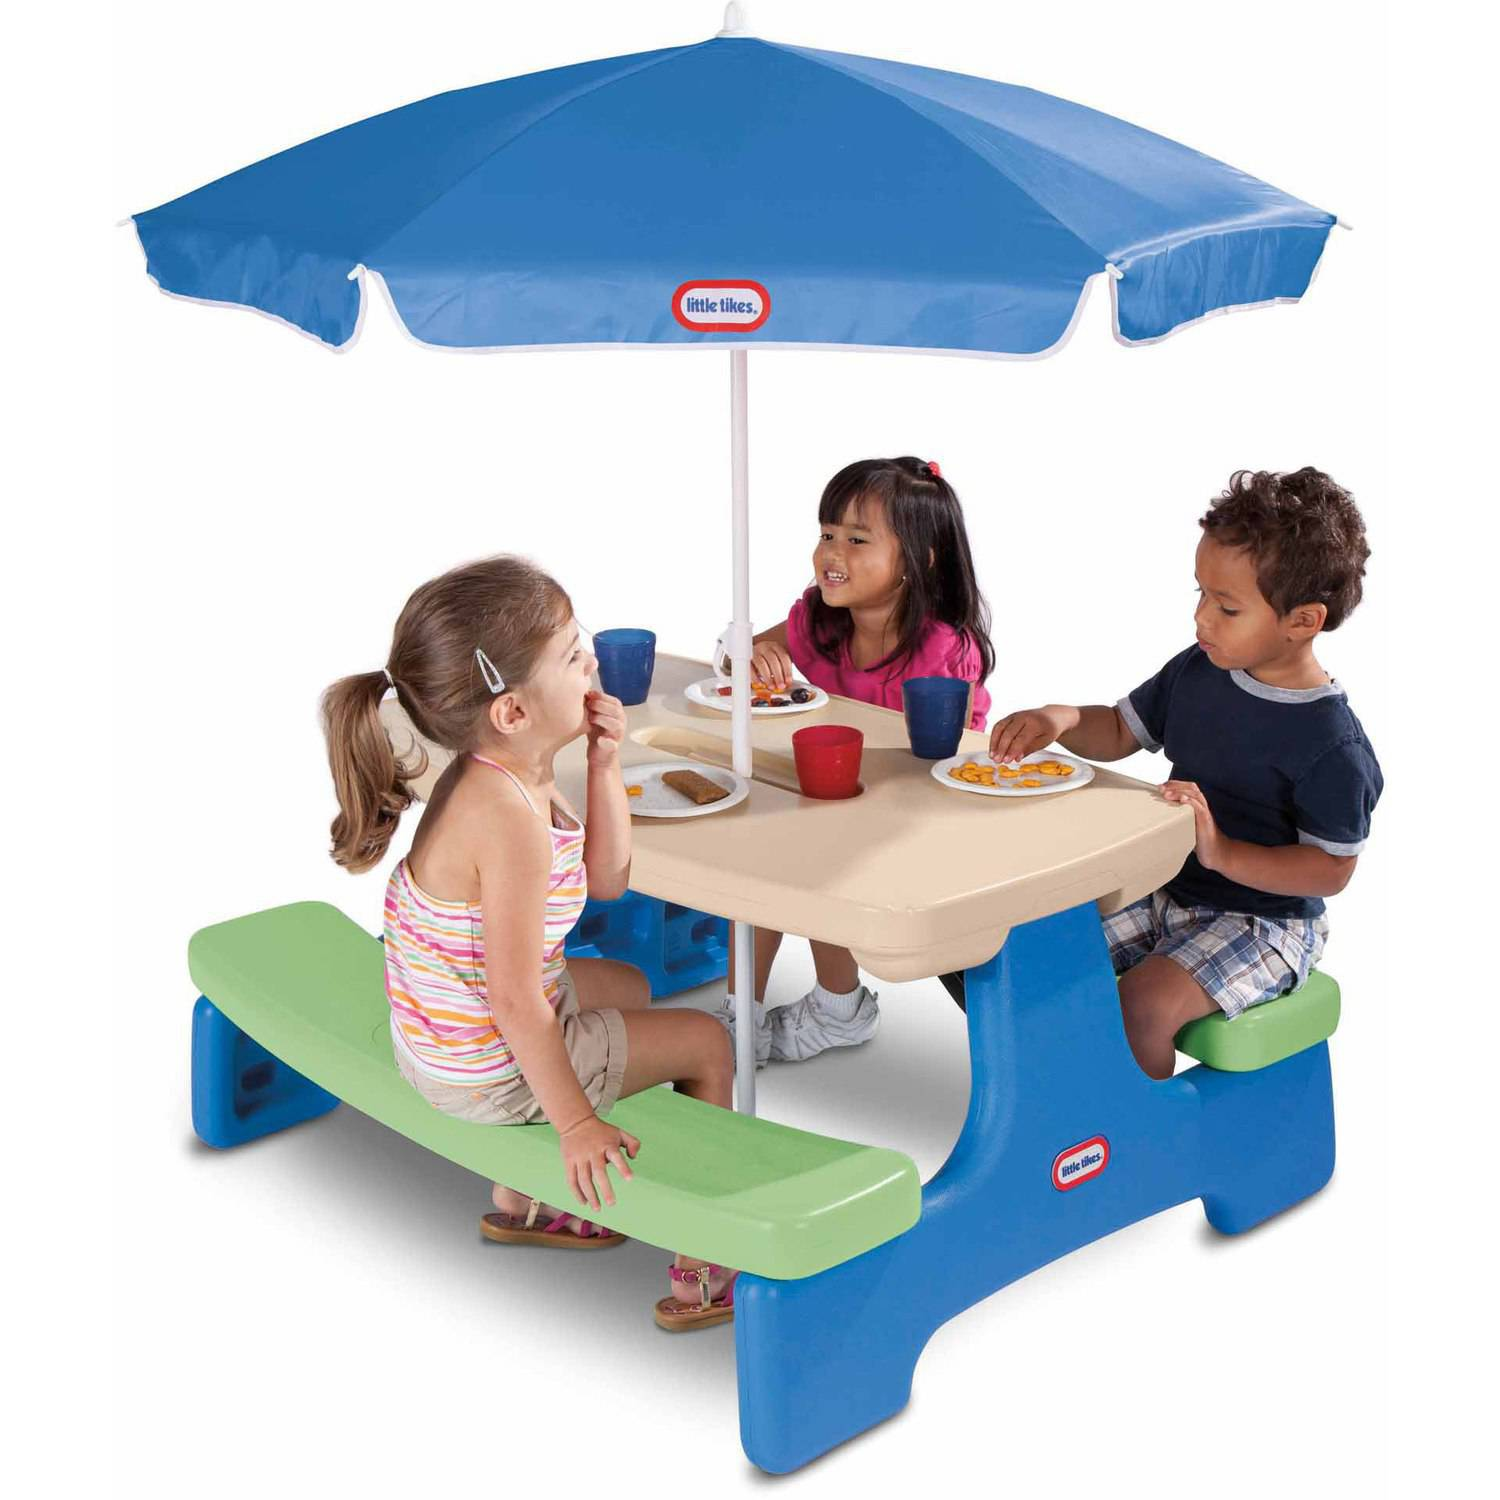 Little Tikes Easy Store Picnic Table with Umbrella by MGA Entertainment